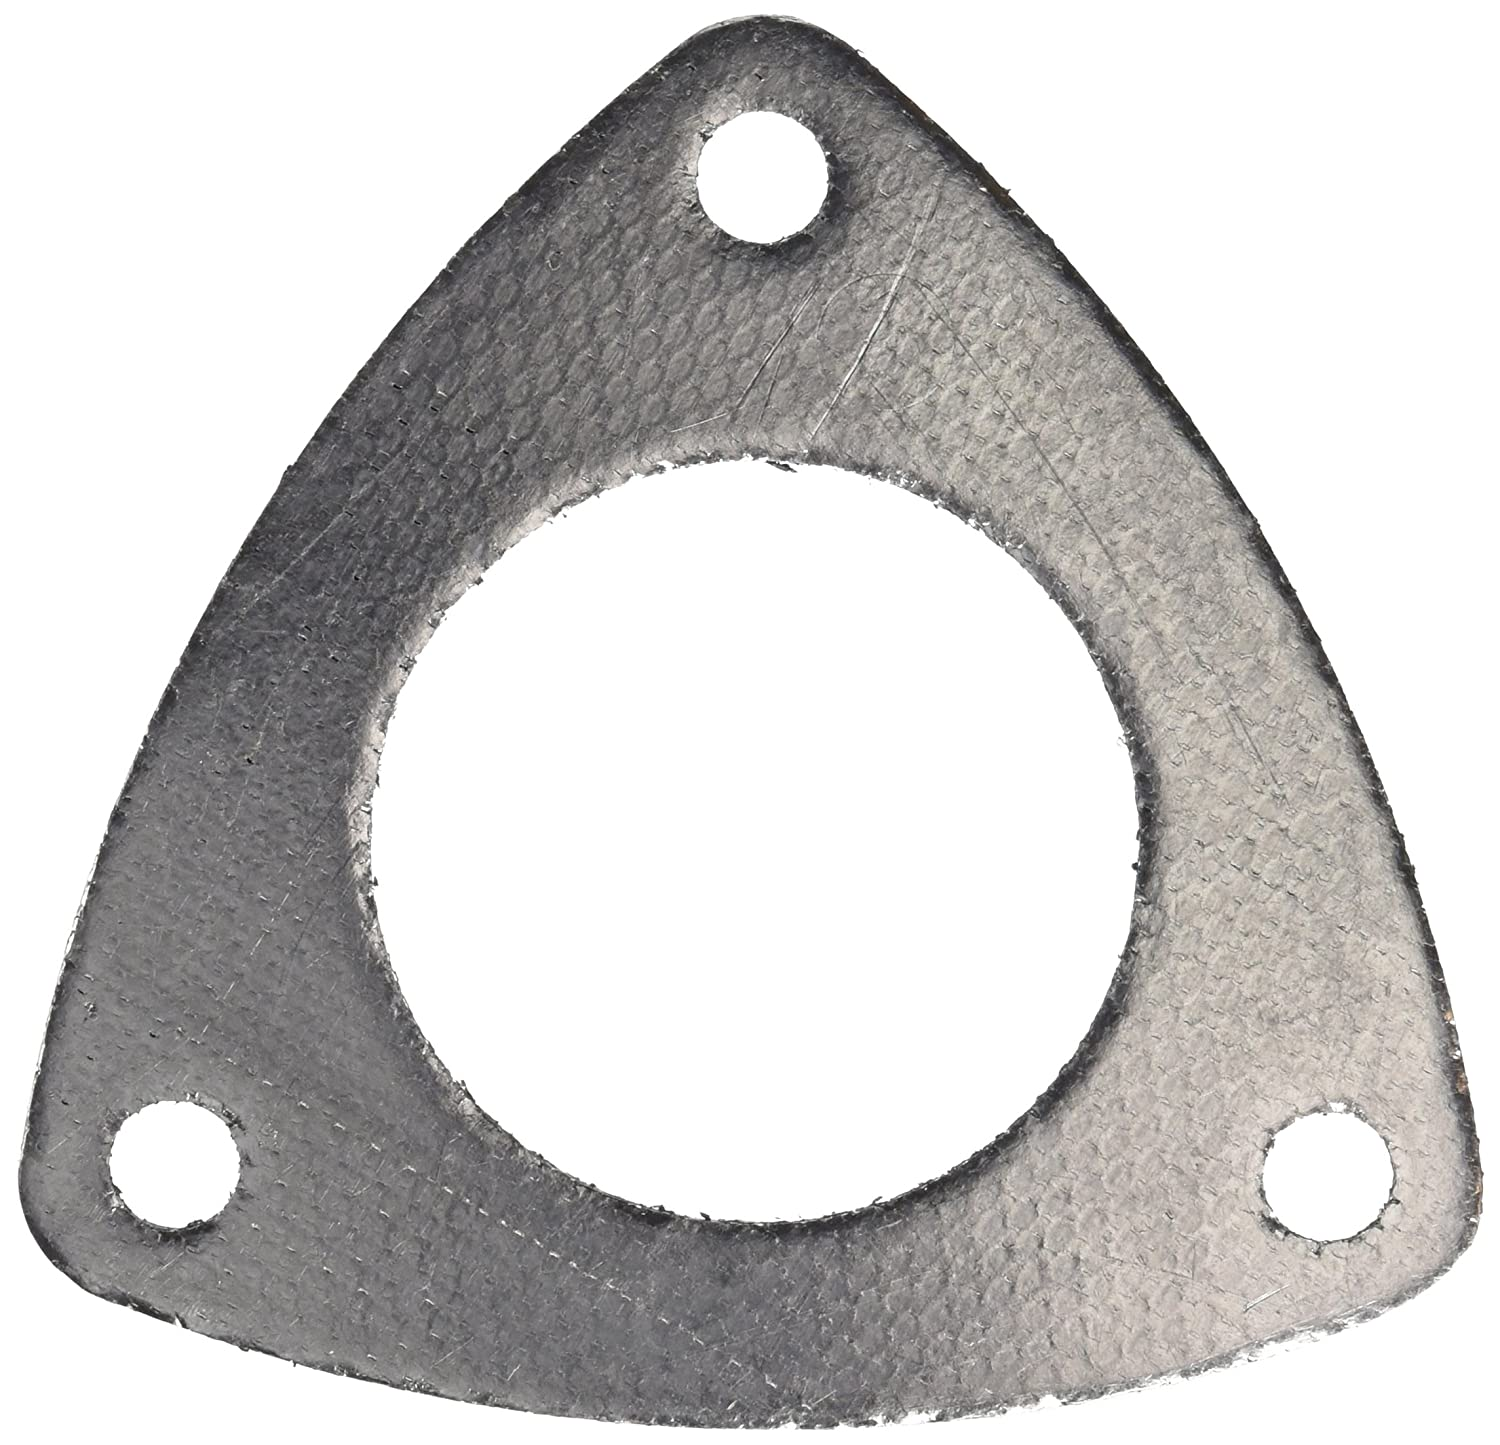 MAHLE Original F7534 Catalytic Converter Gasket